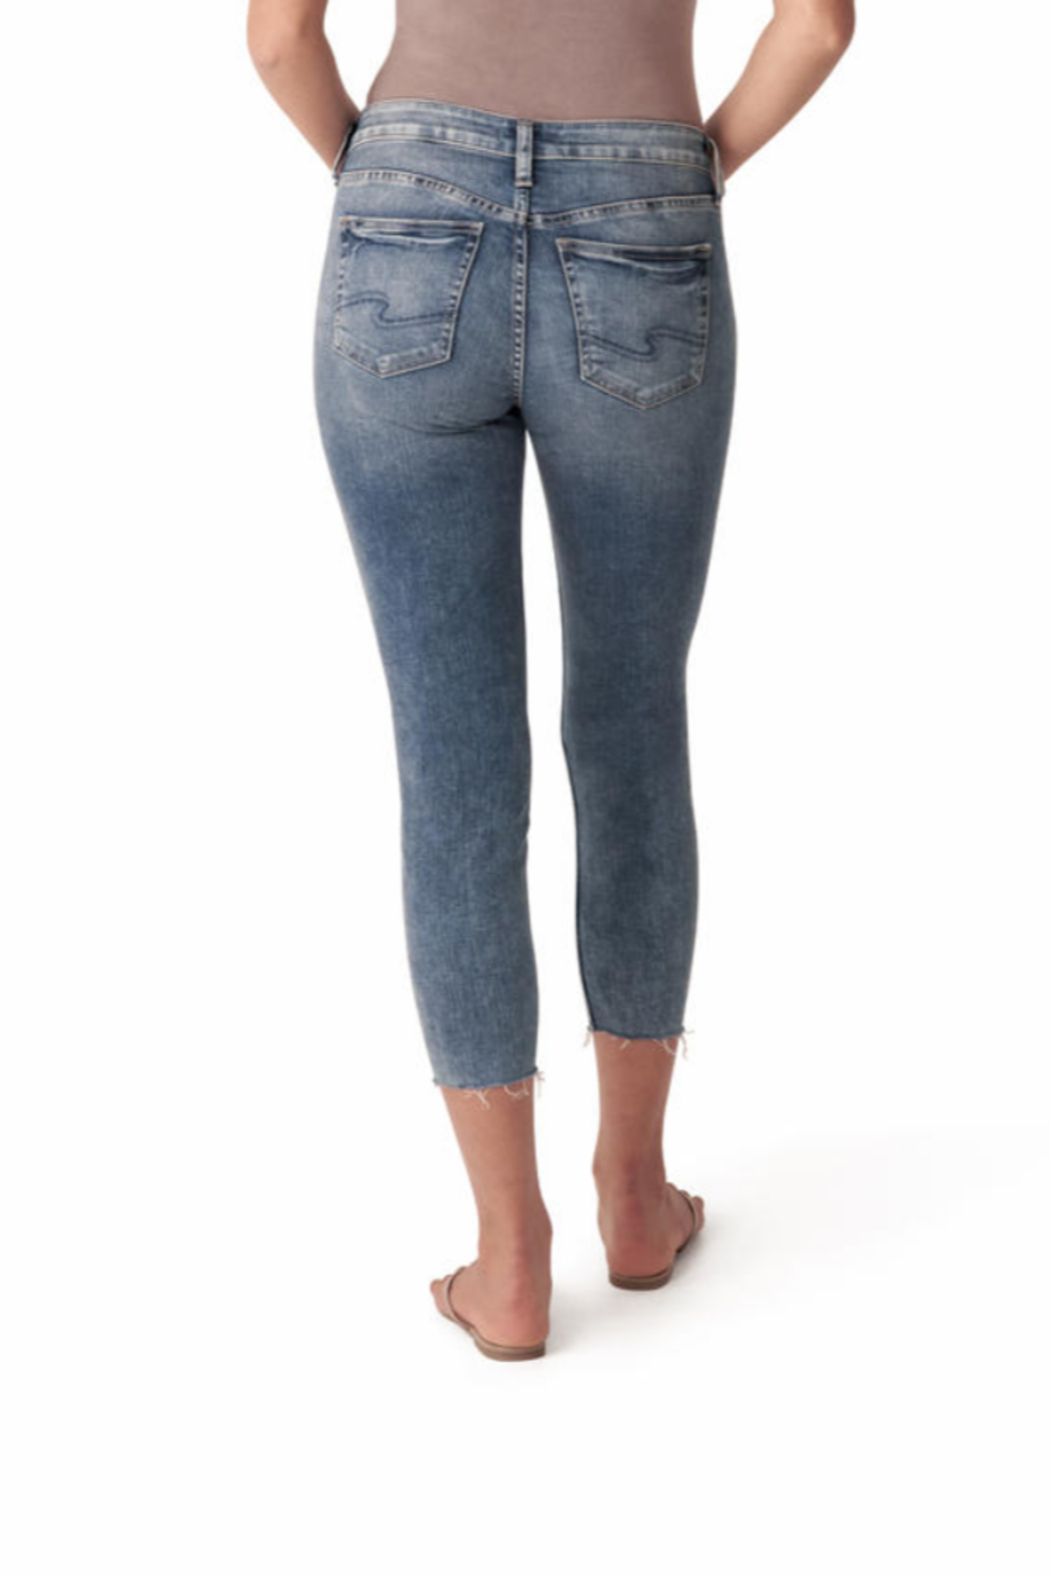 Silver Jeans Co. 4 Button Summer Denim Jeans - Back Cropped Image